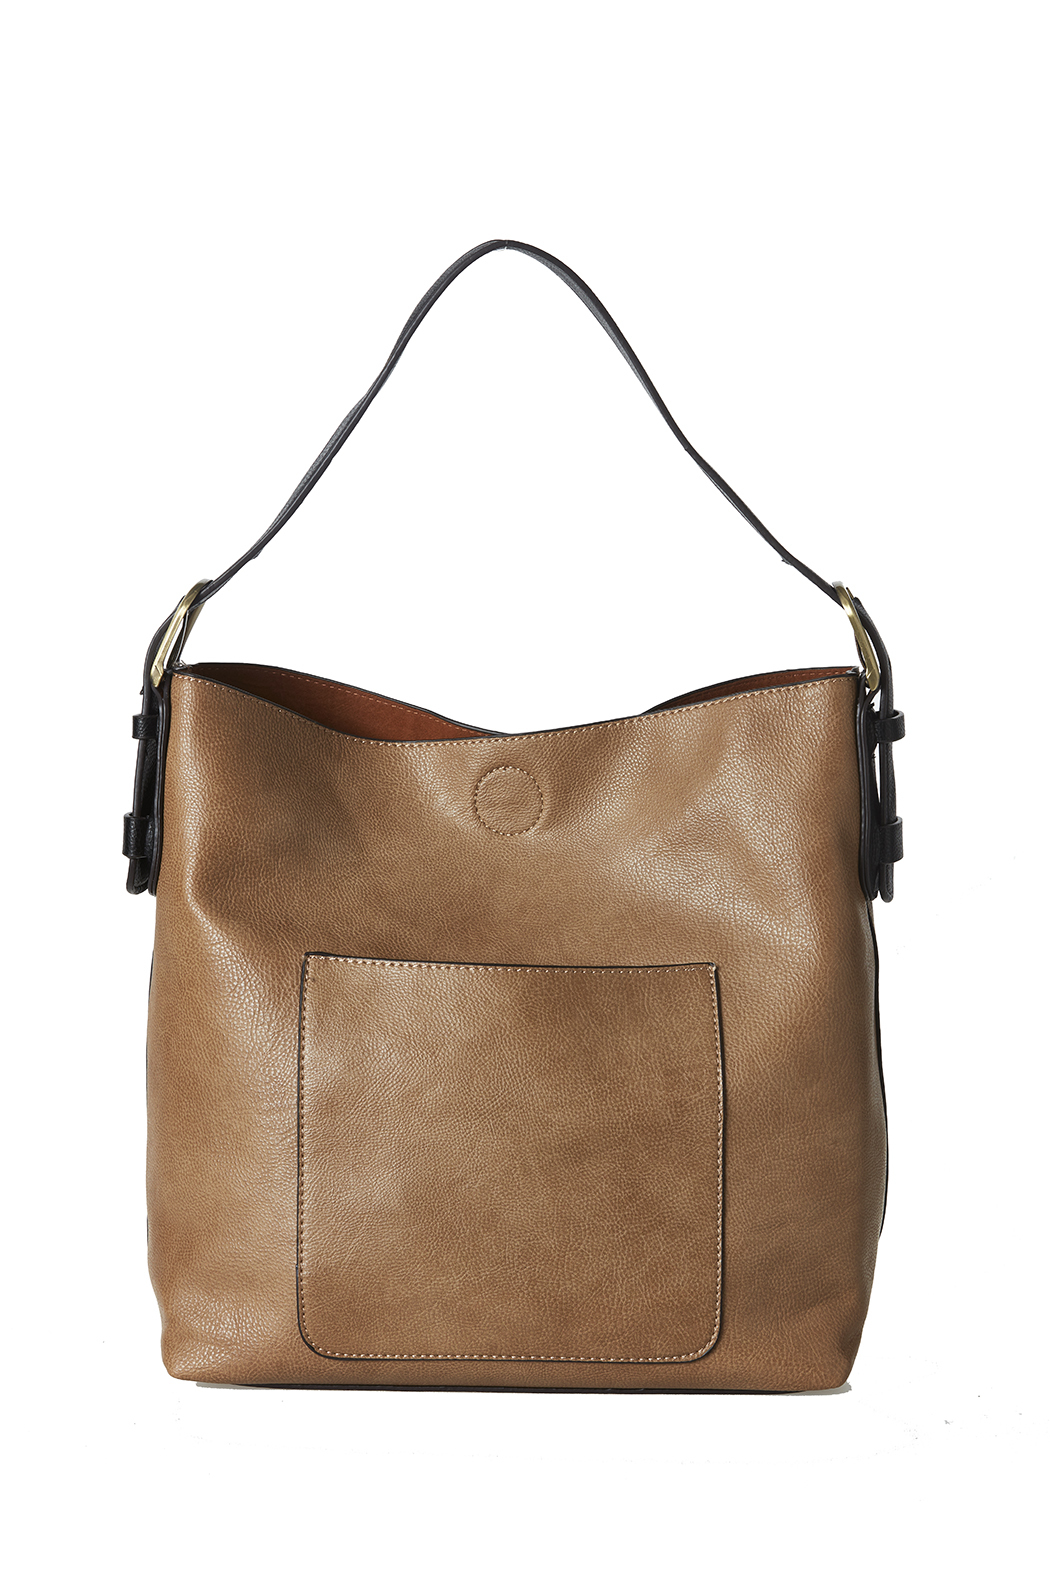 Susan And Joy Vegan Leather Tote From Philadelphia By Tr 232 S